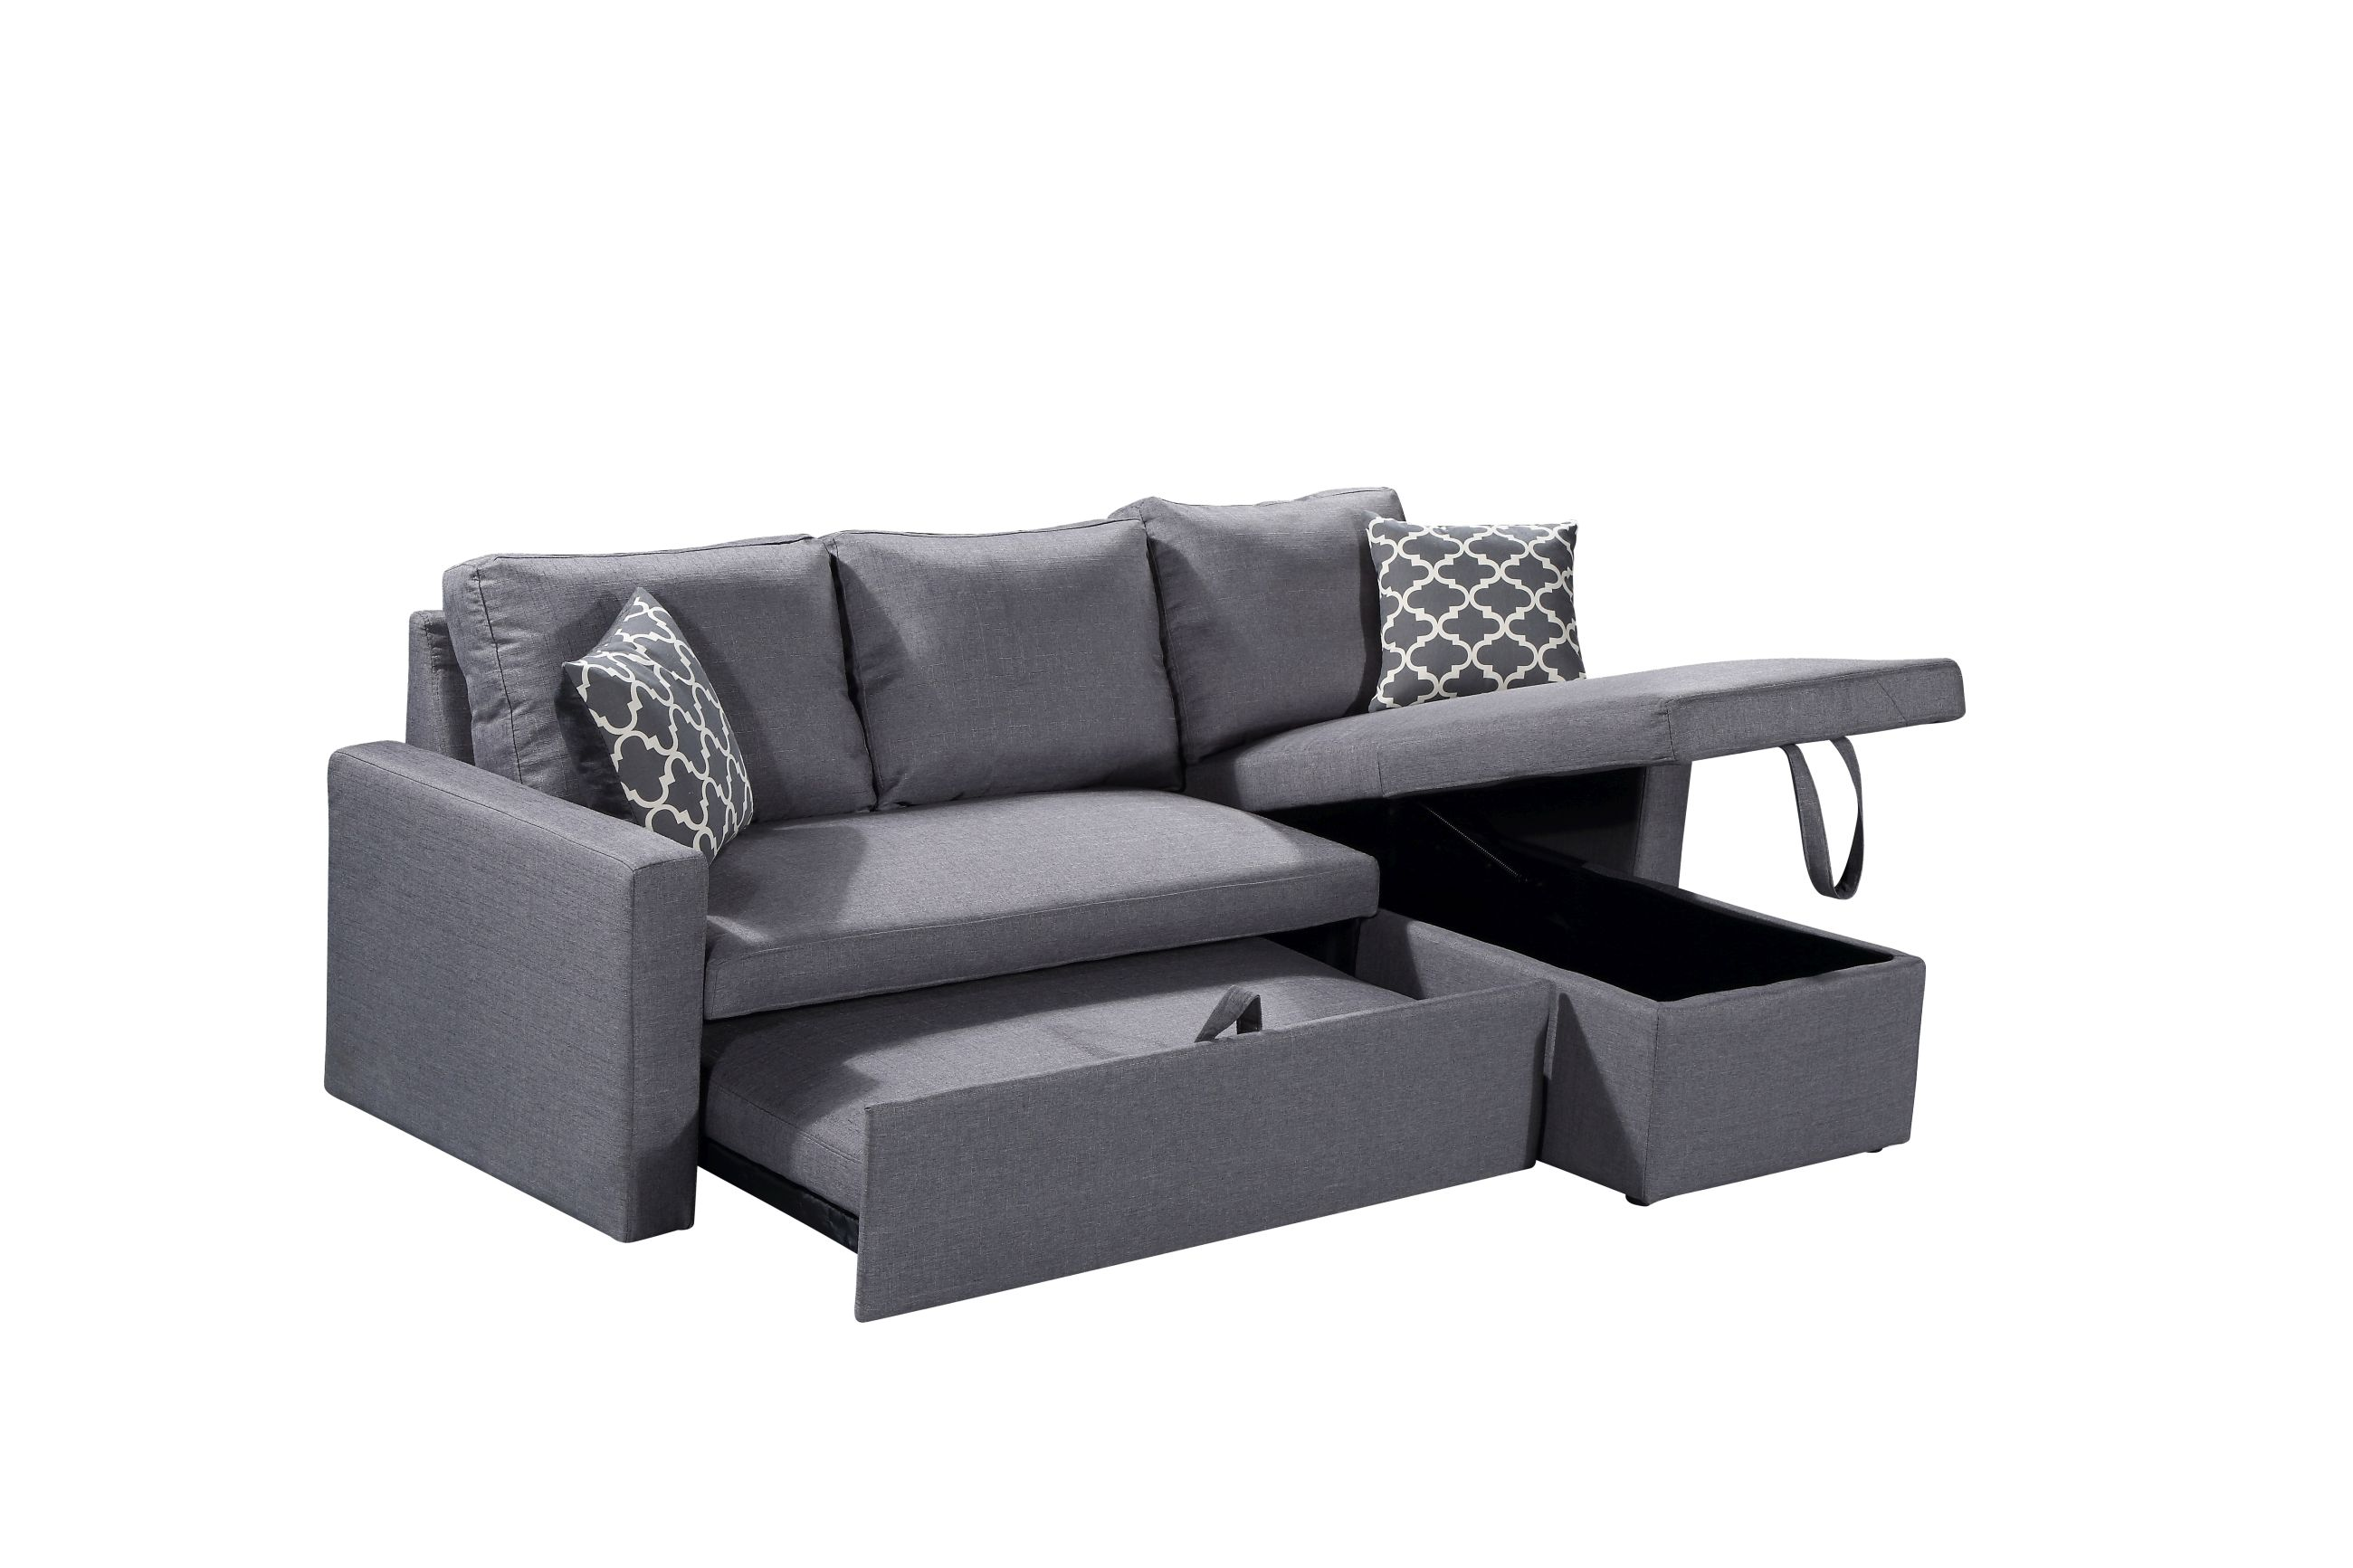 Hs05 Husky Furniture Zara Reverseable Sectional Sofa 3